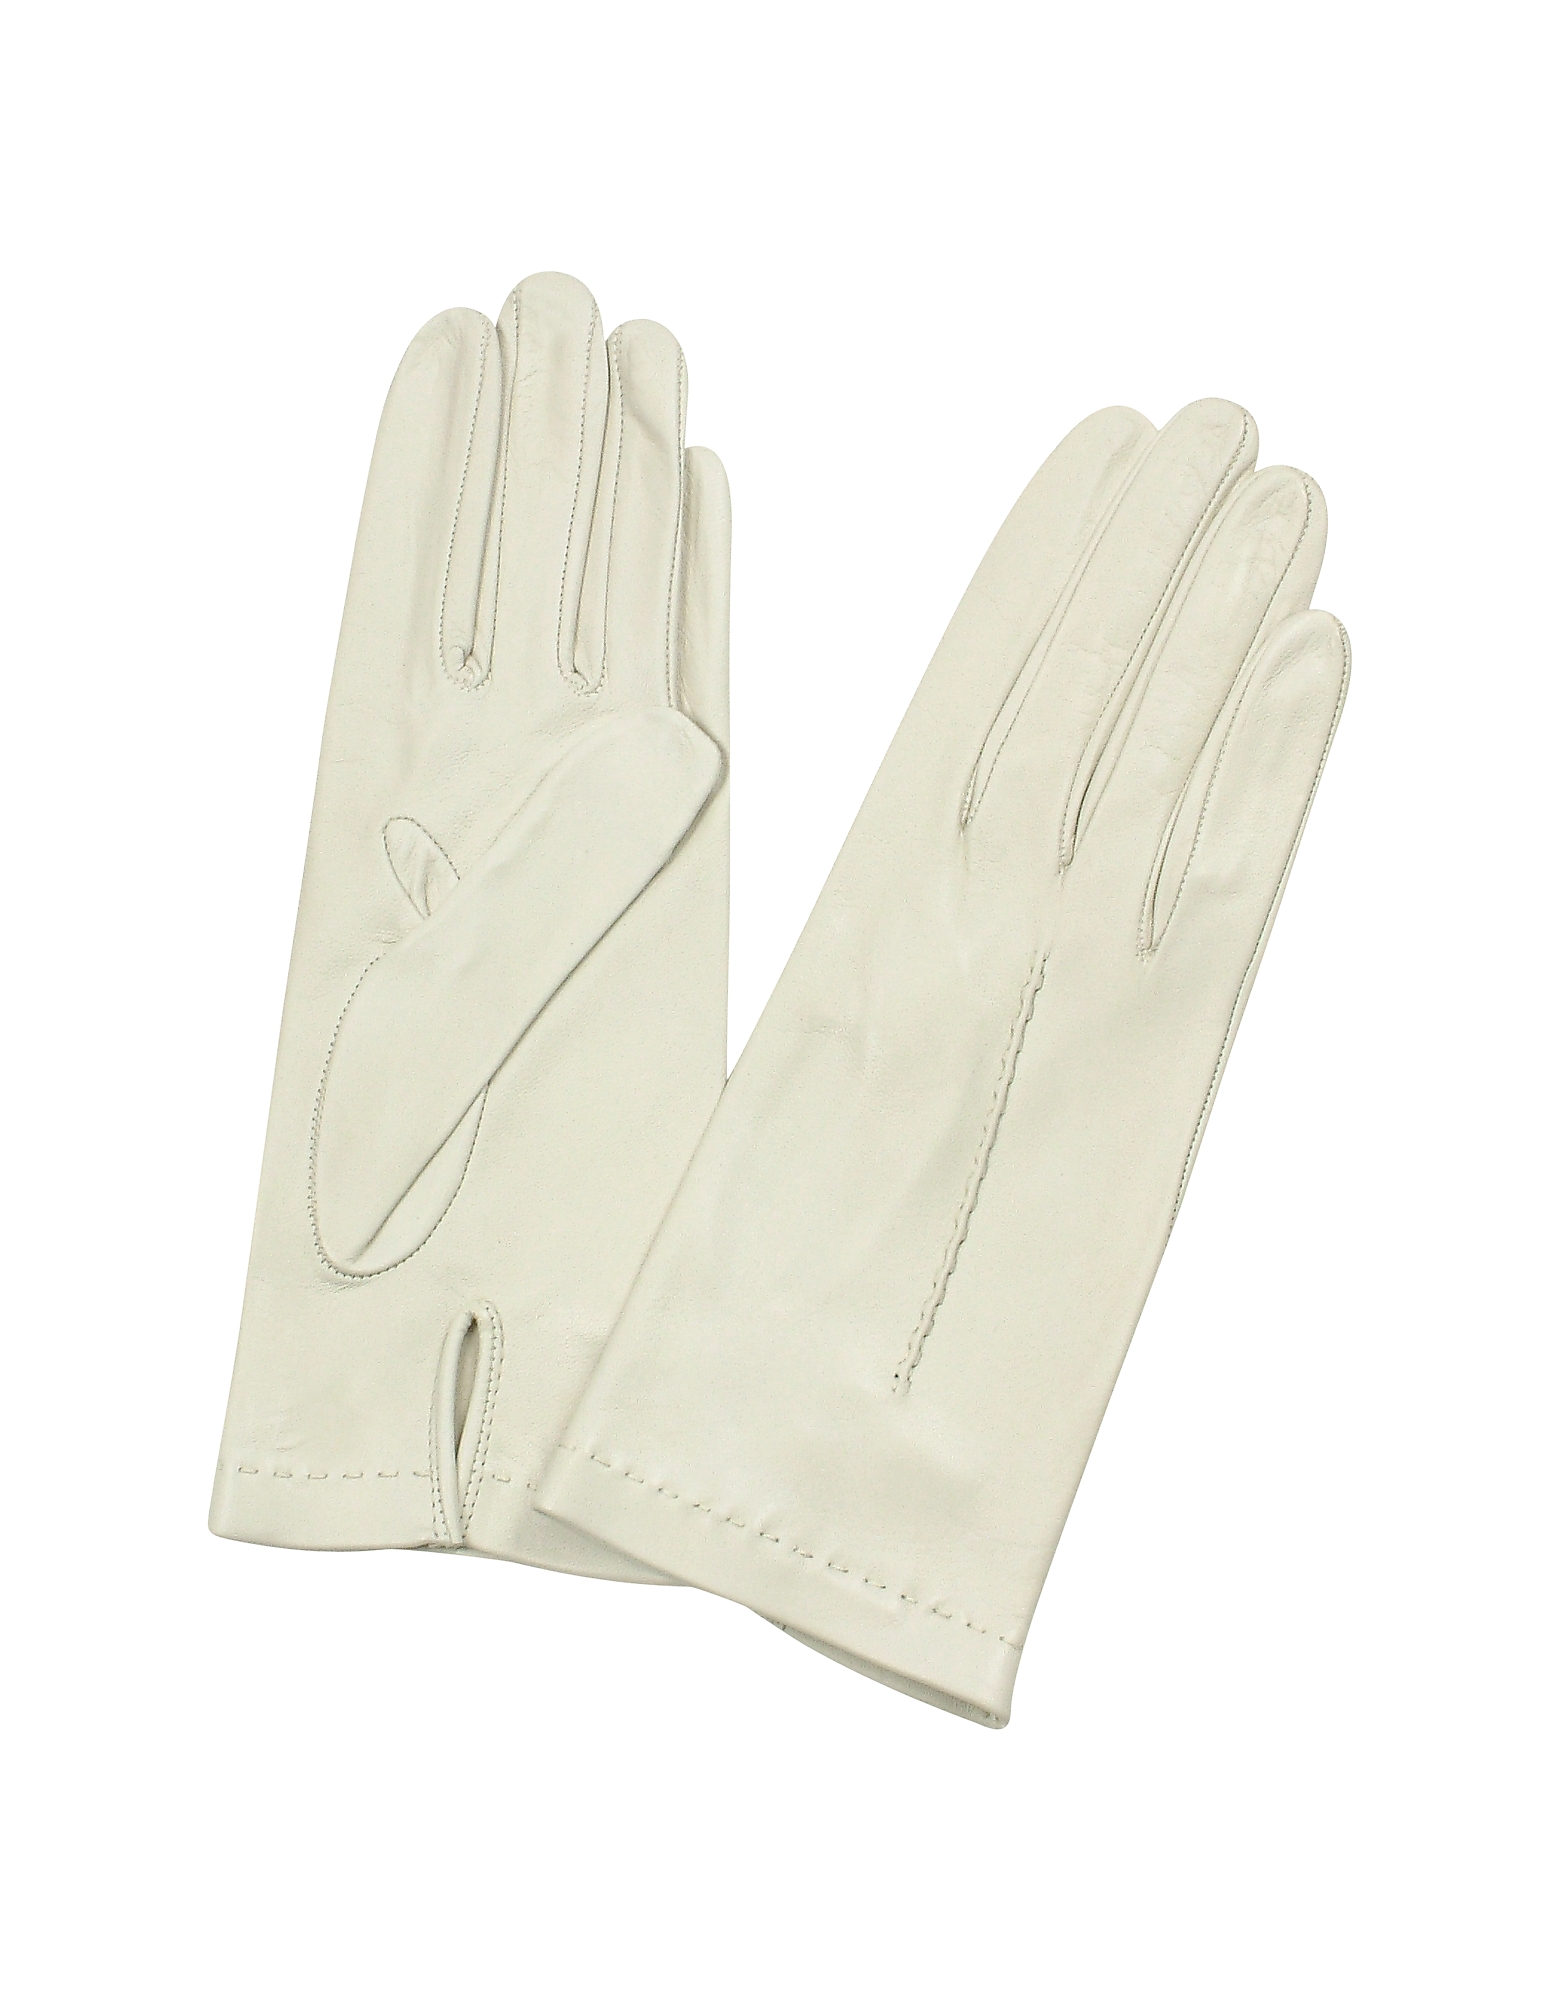 Women's Ivory Unlined Italian Leather Gloves